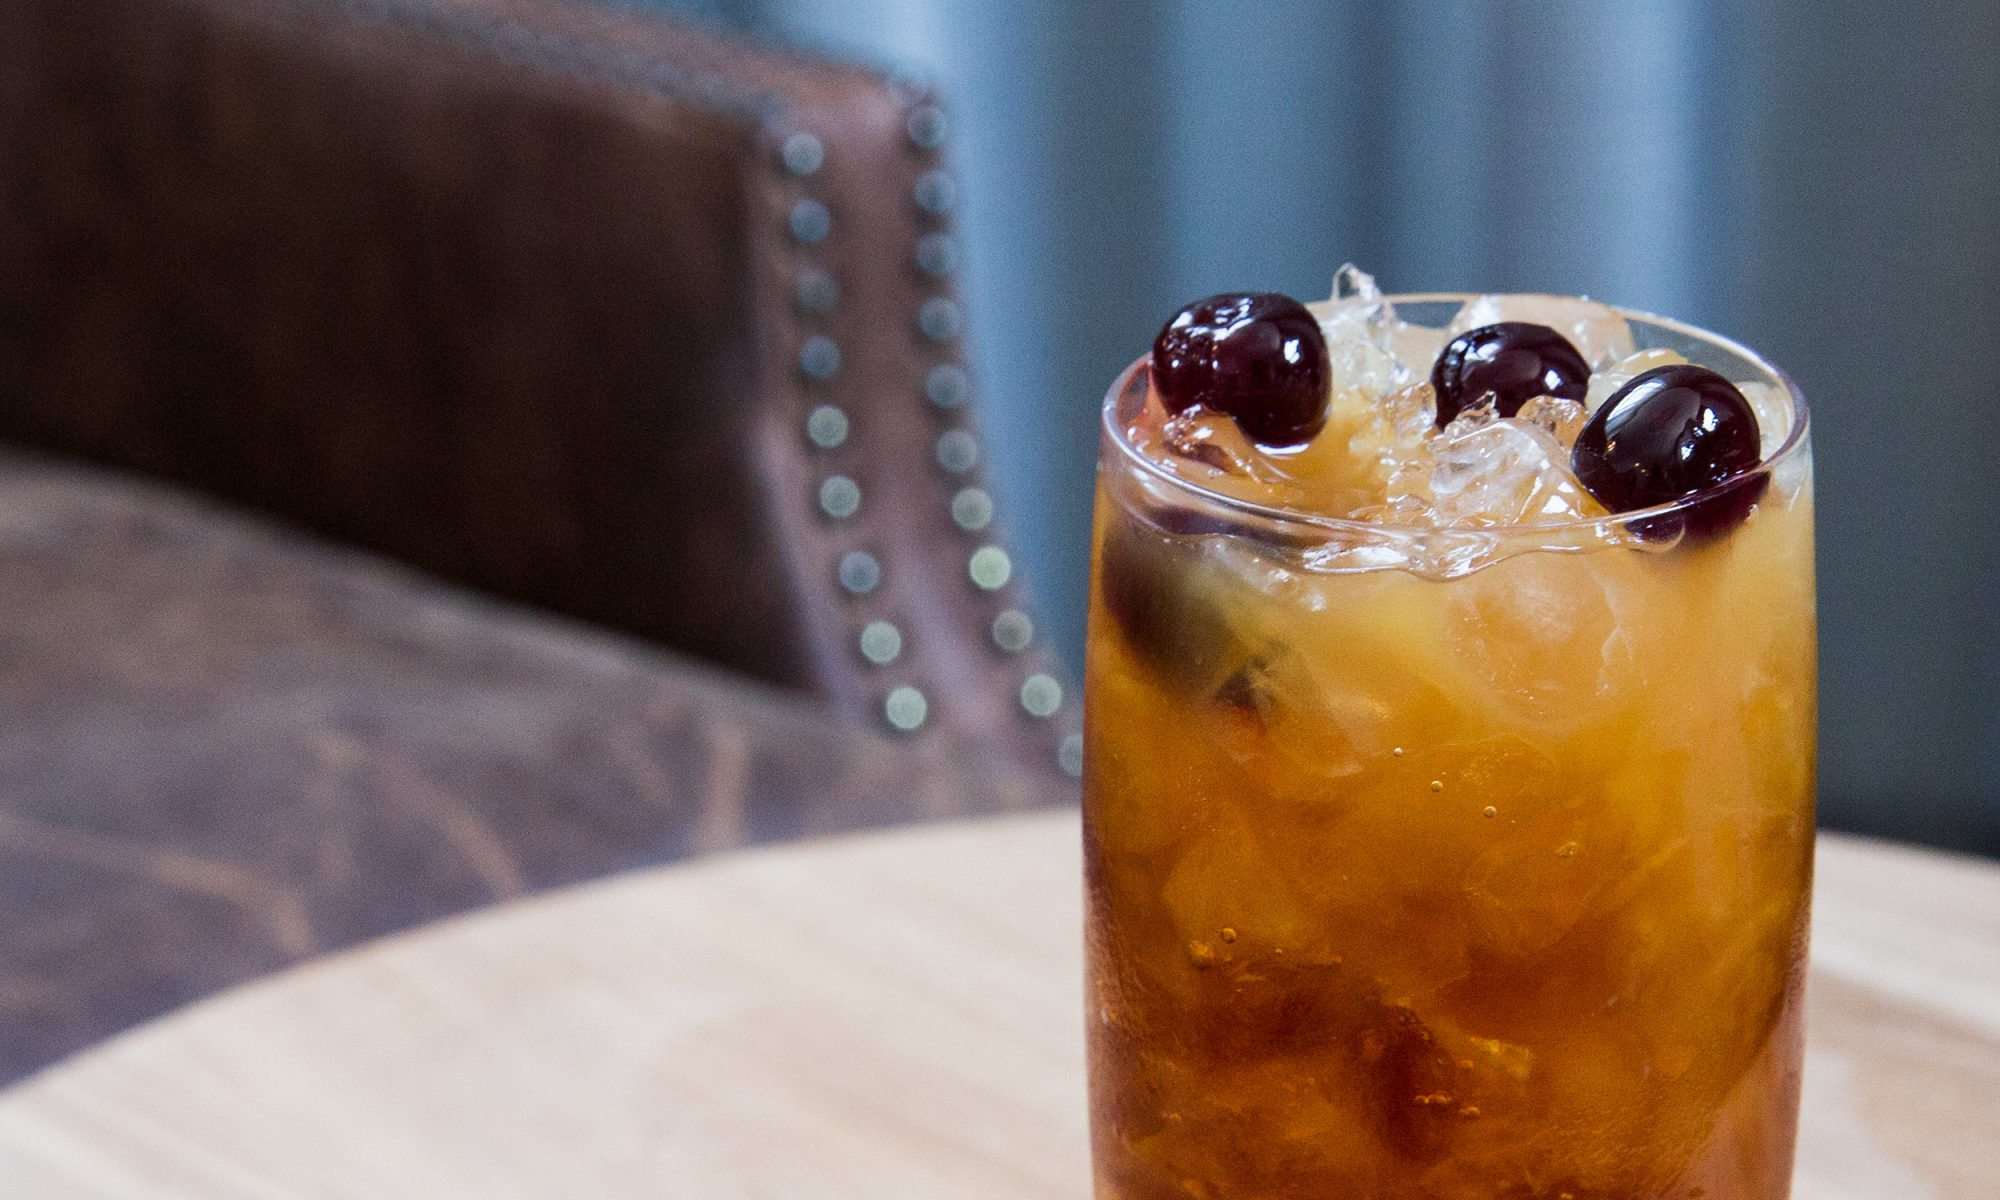 EC: This Long Island Iced Coffee May Make You a Morning Person